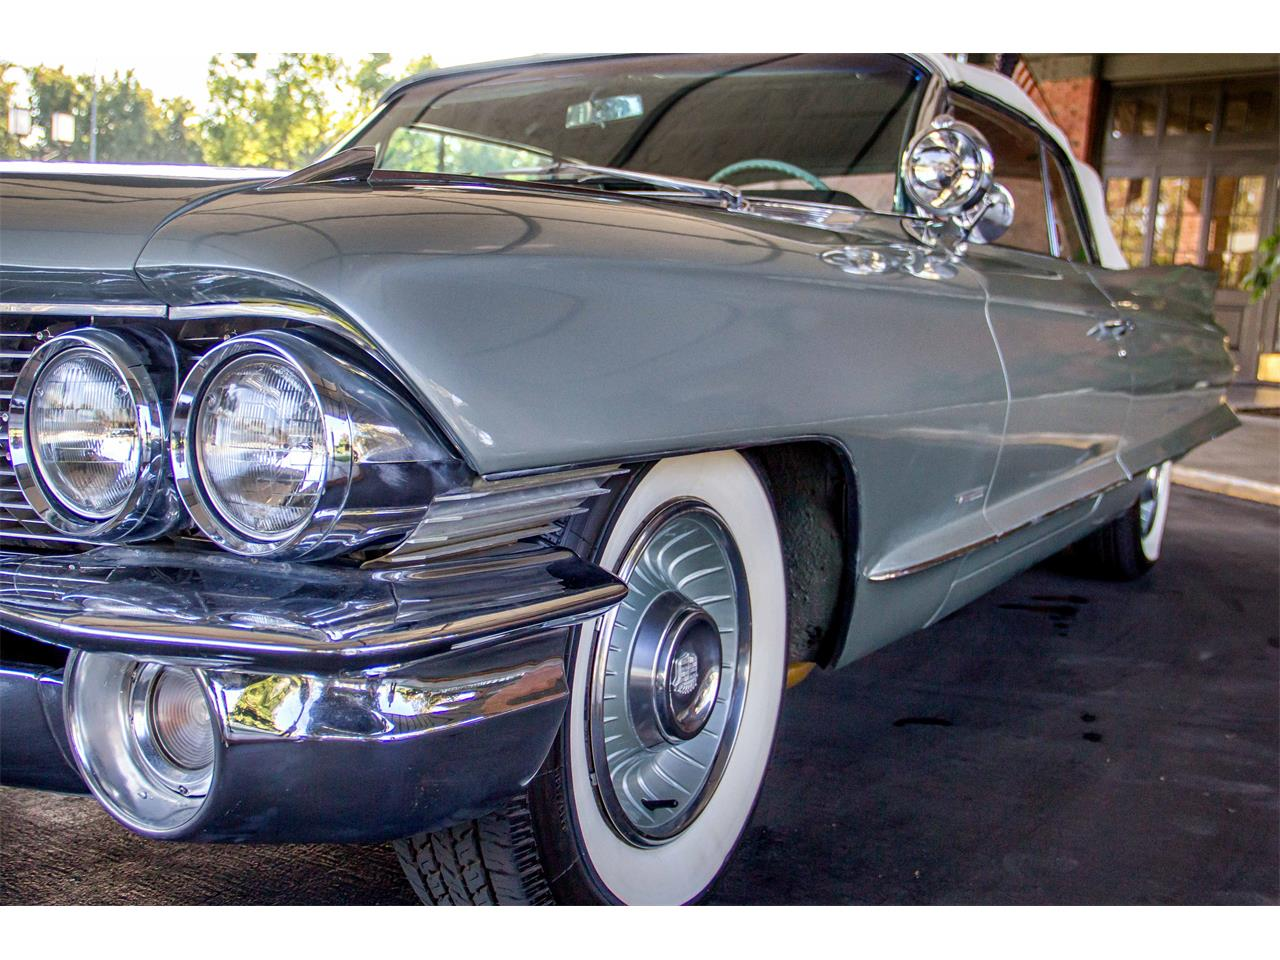 Large Picture of '61 DeVille located in California - $55,500.00 Offered by a Private Seller - K2GI